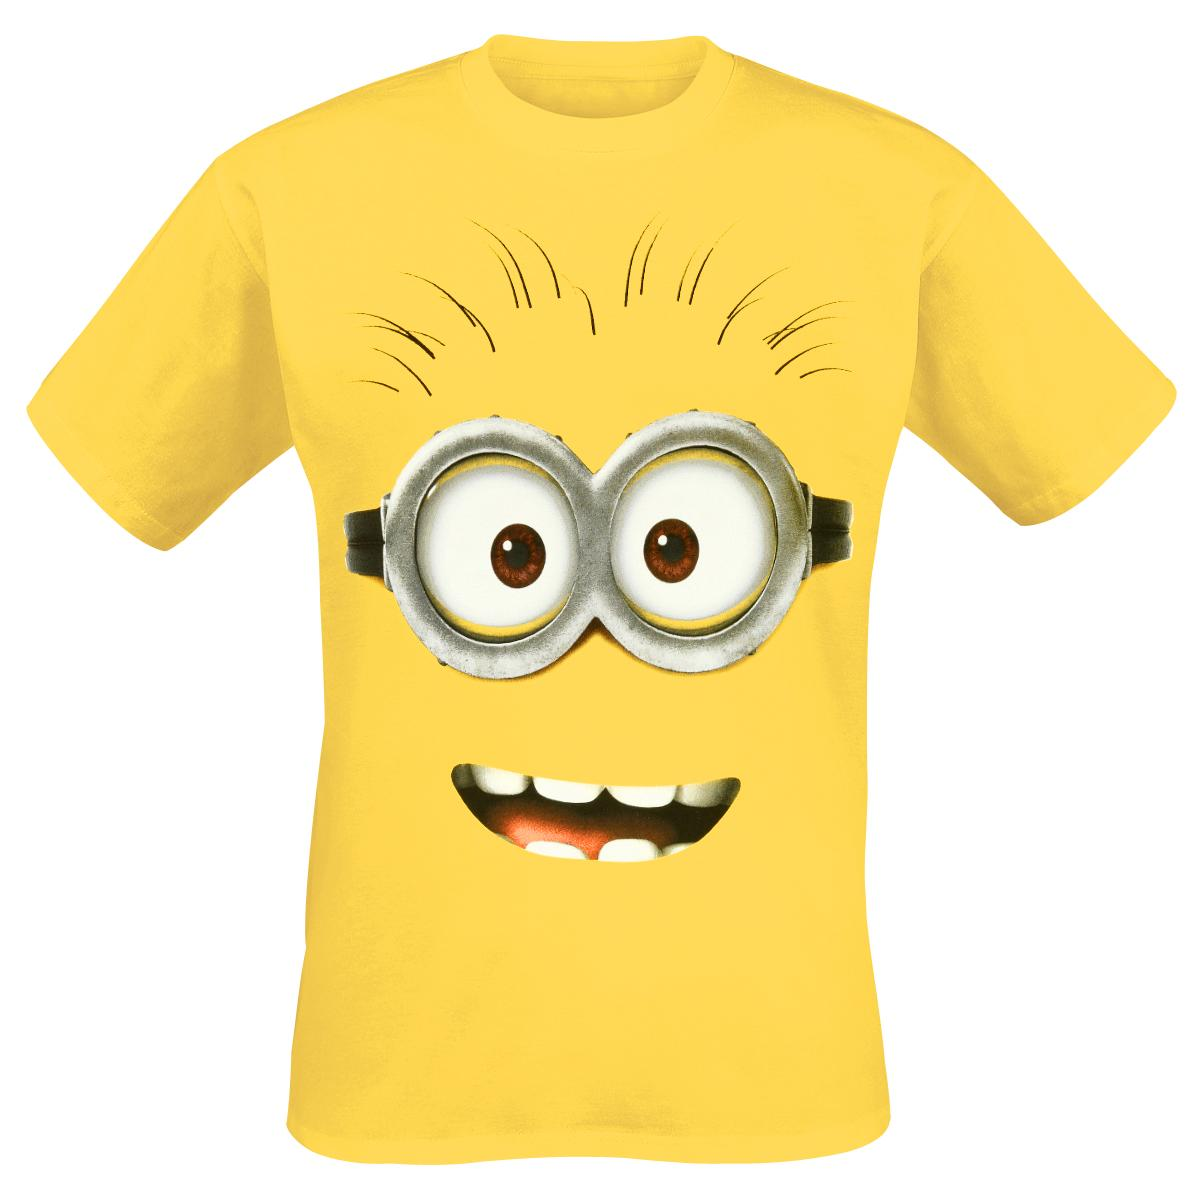 Goggle Face T-shirt Design tee